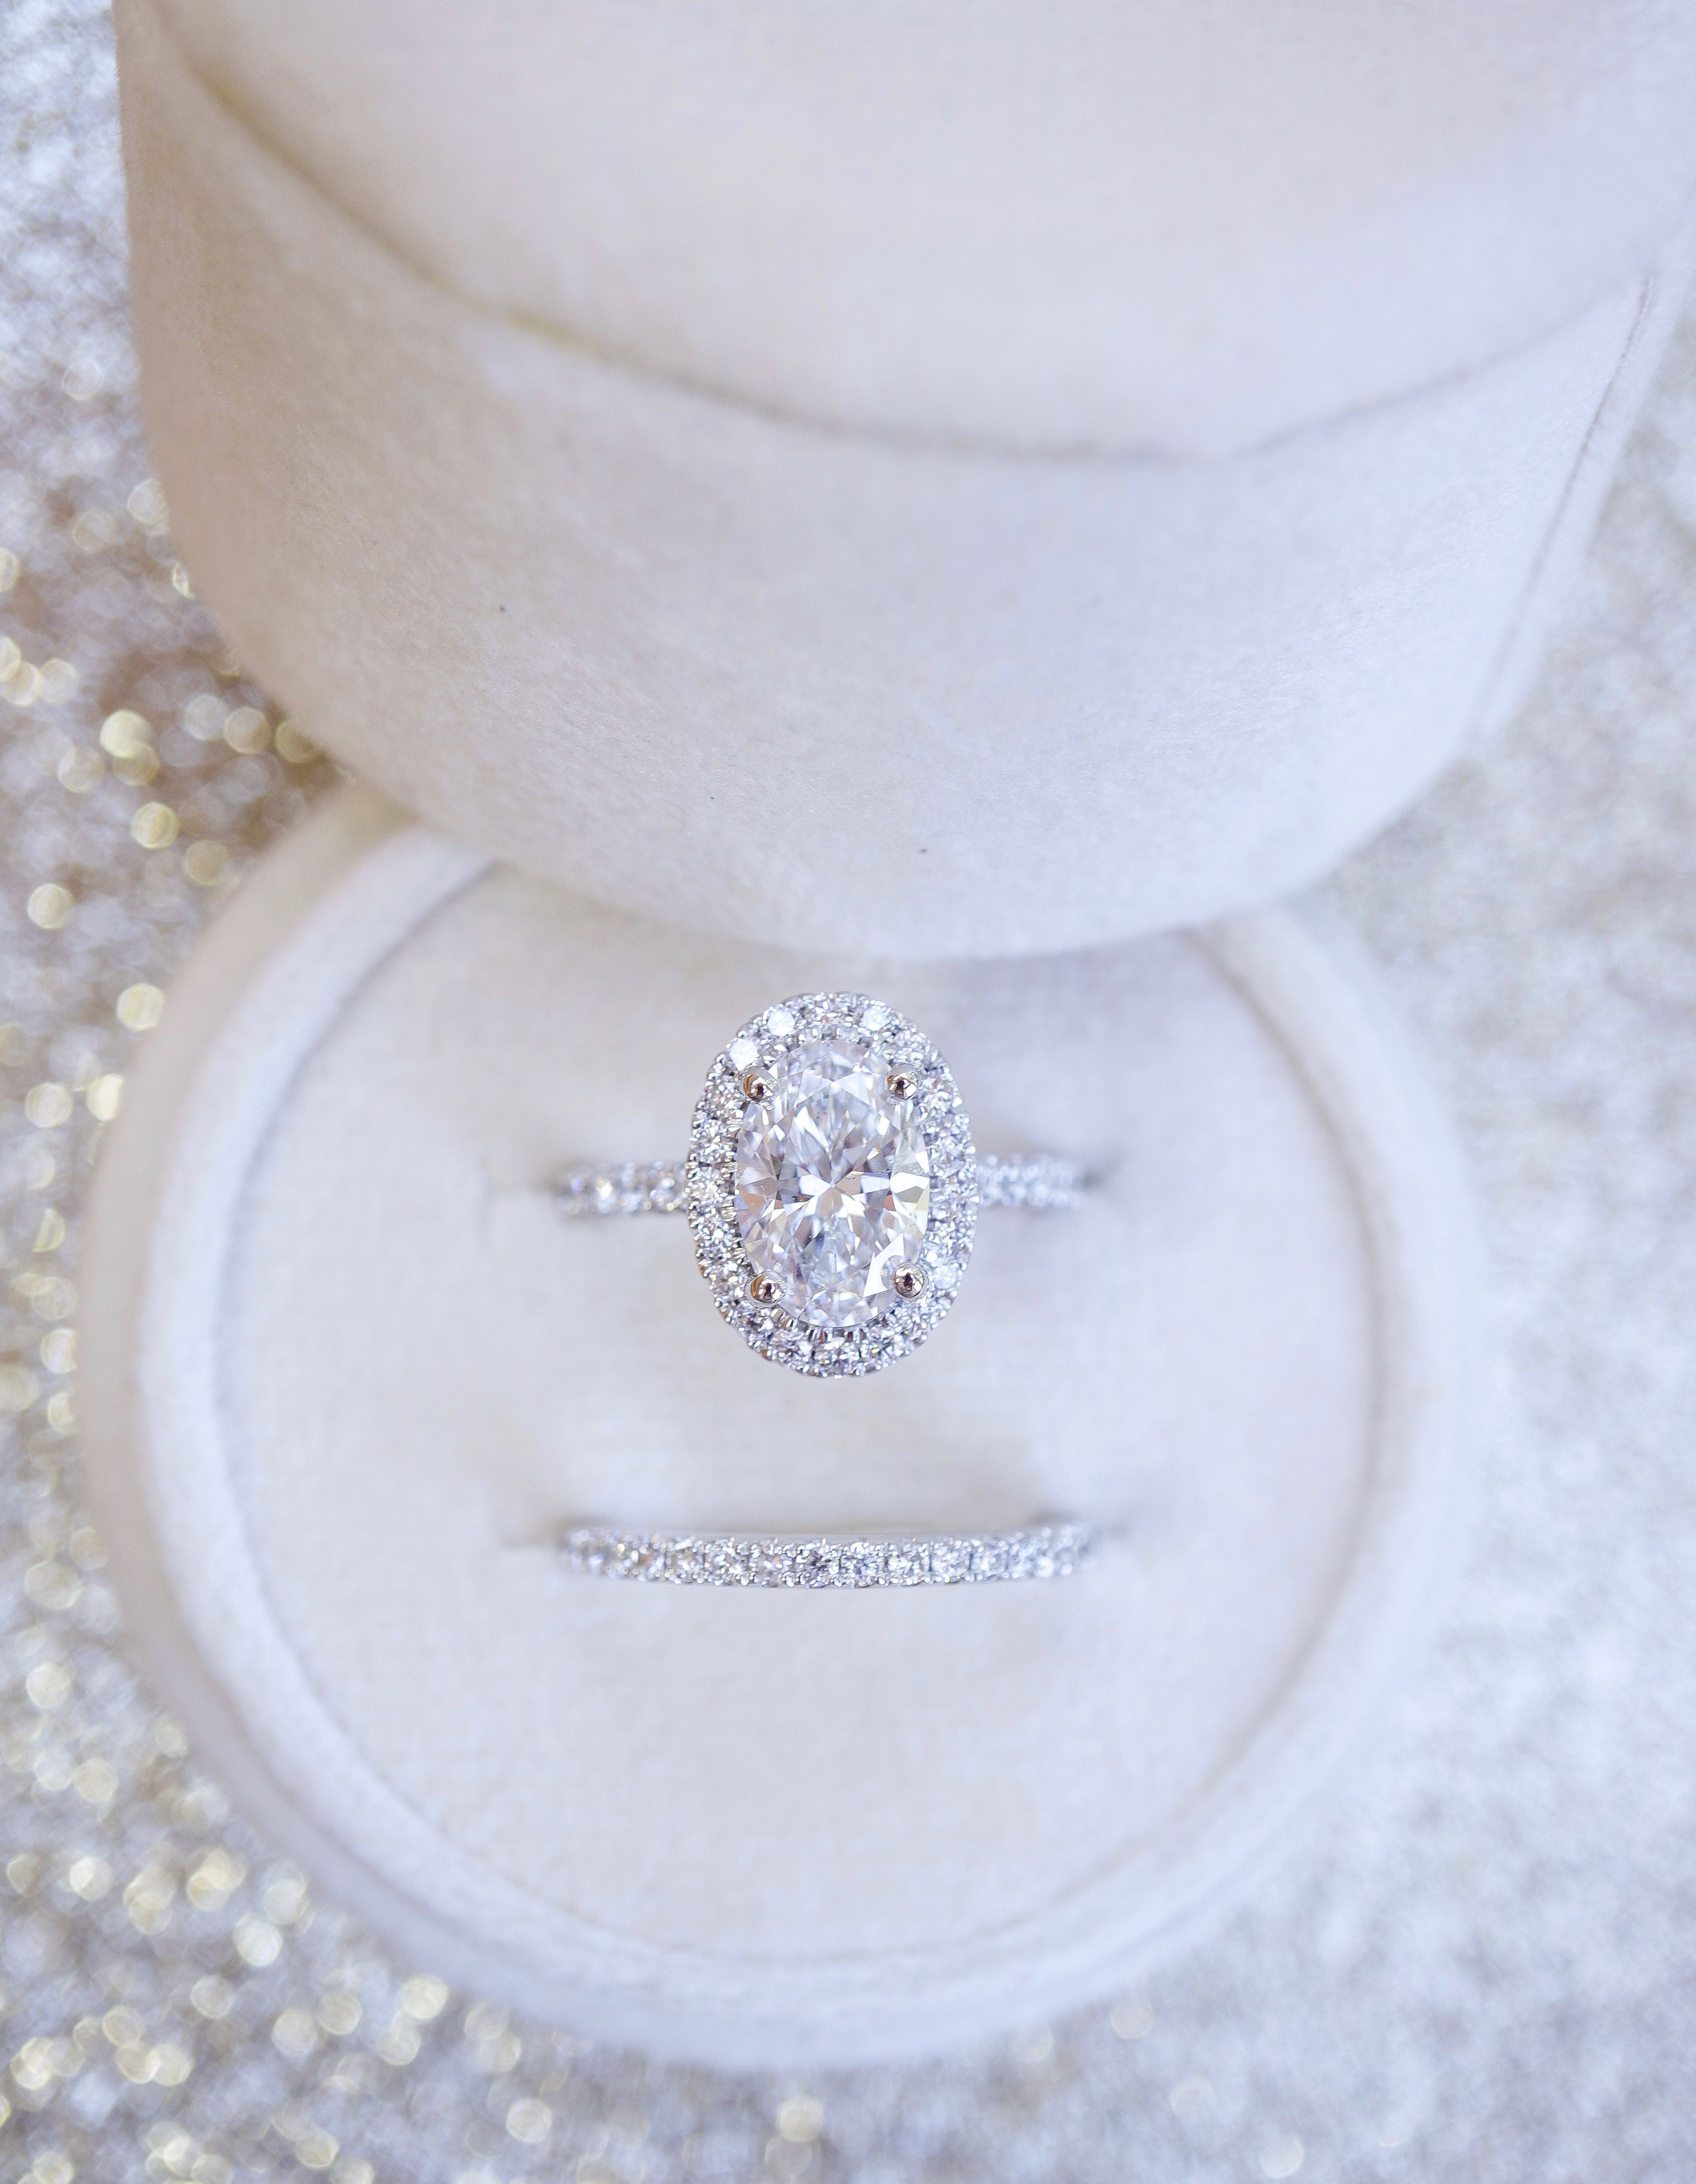 Oval Halo Diamond Engagement Ring With Matching Wedding Band